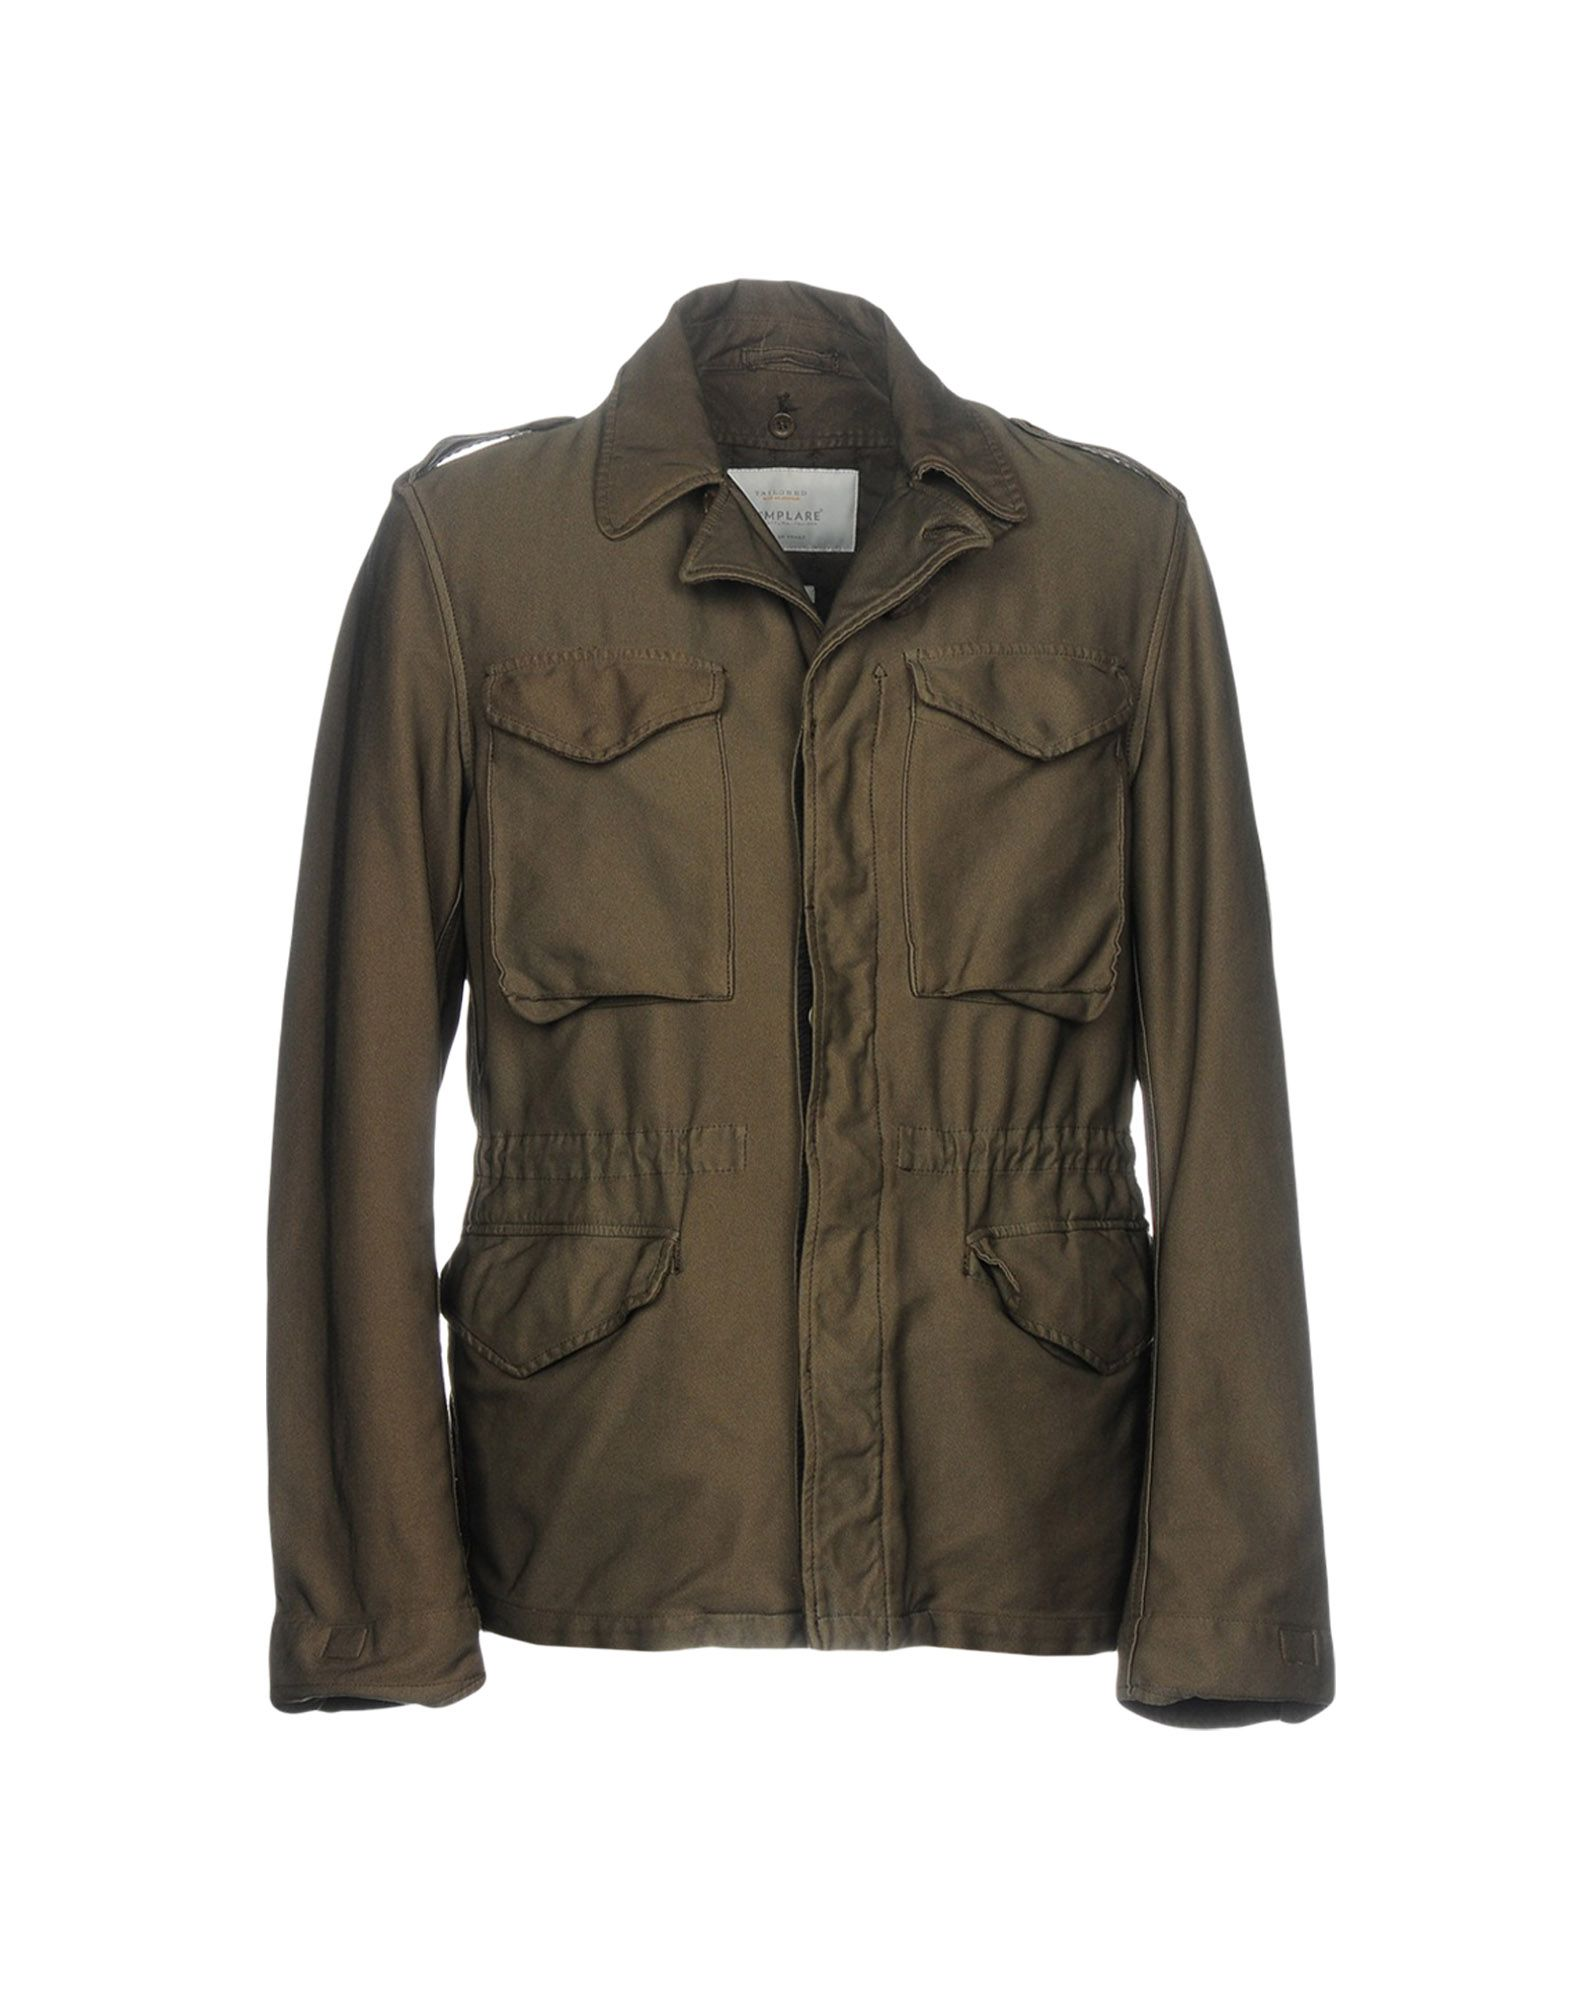 ESEMPLARE Jacket in Military Green